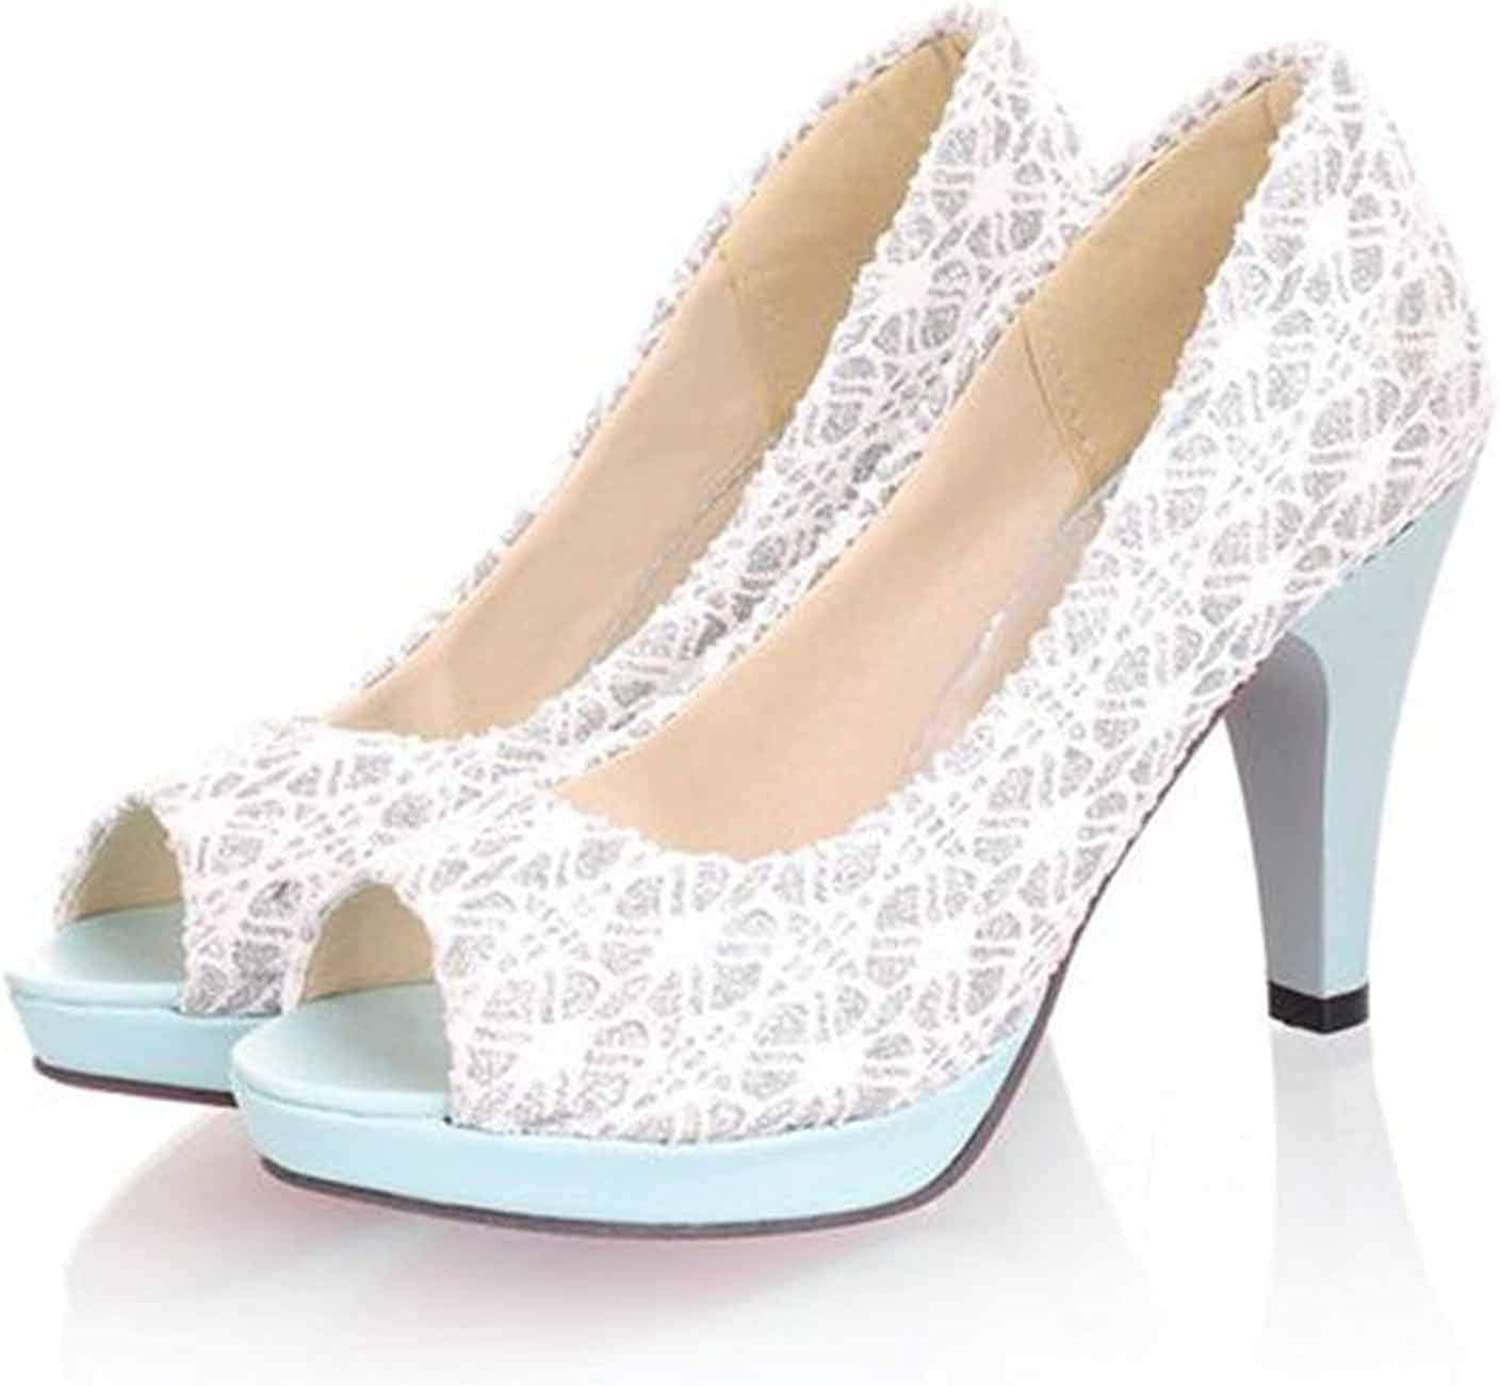 Lace Women shoes High Heels Peep Toe Ladies shoes 31-43 Spring Summer Party Pump